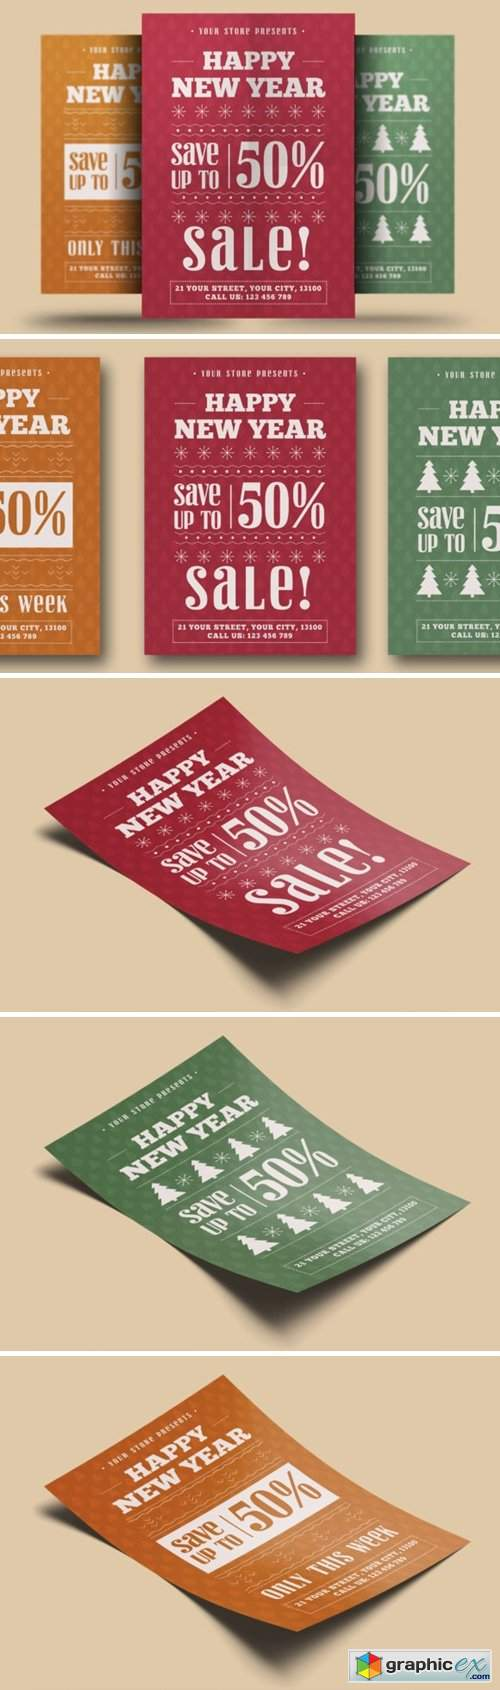 New Year Sale Flyer 2276219